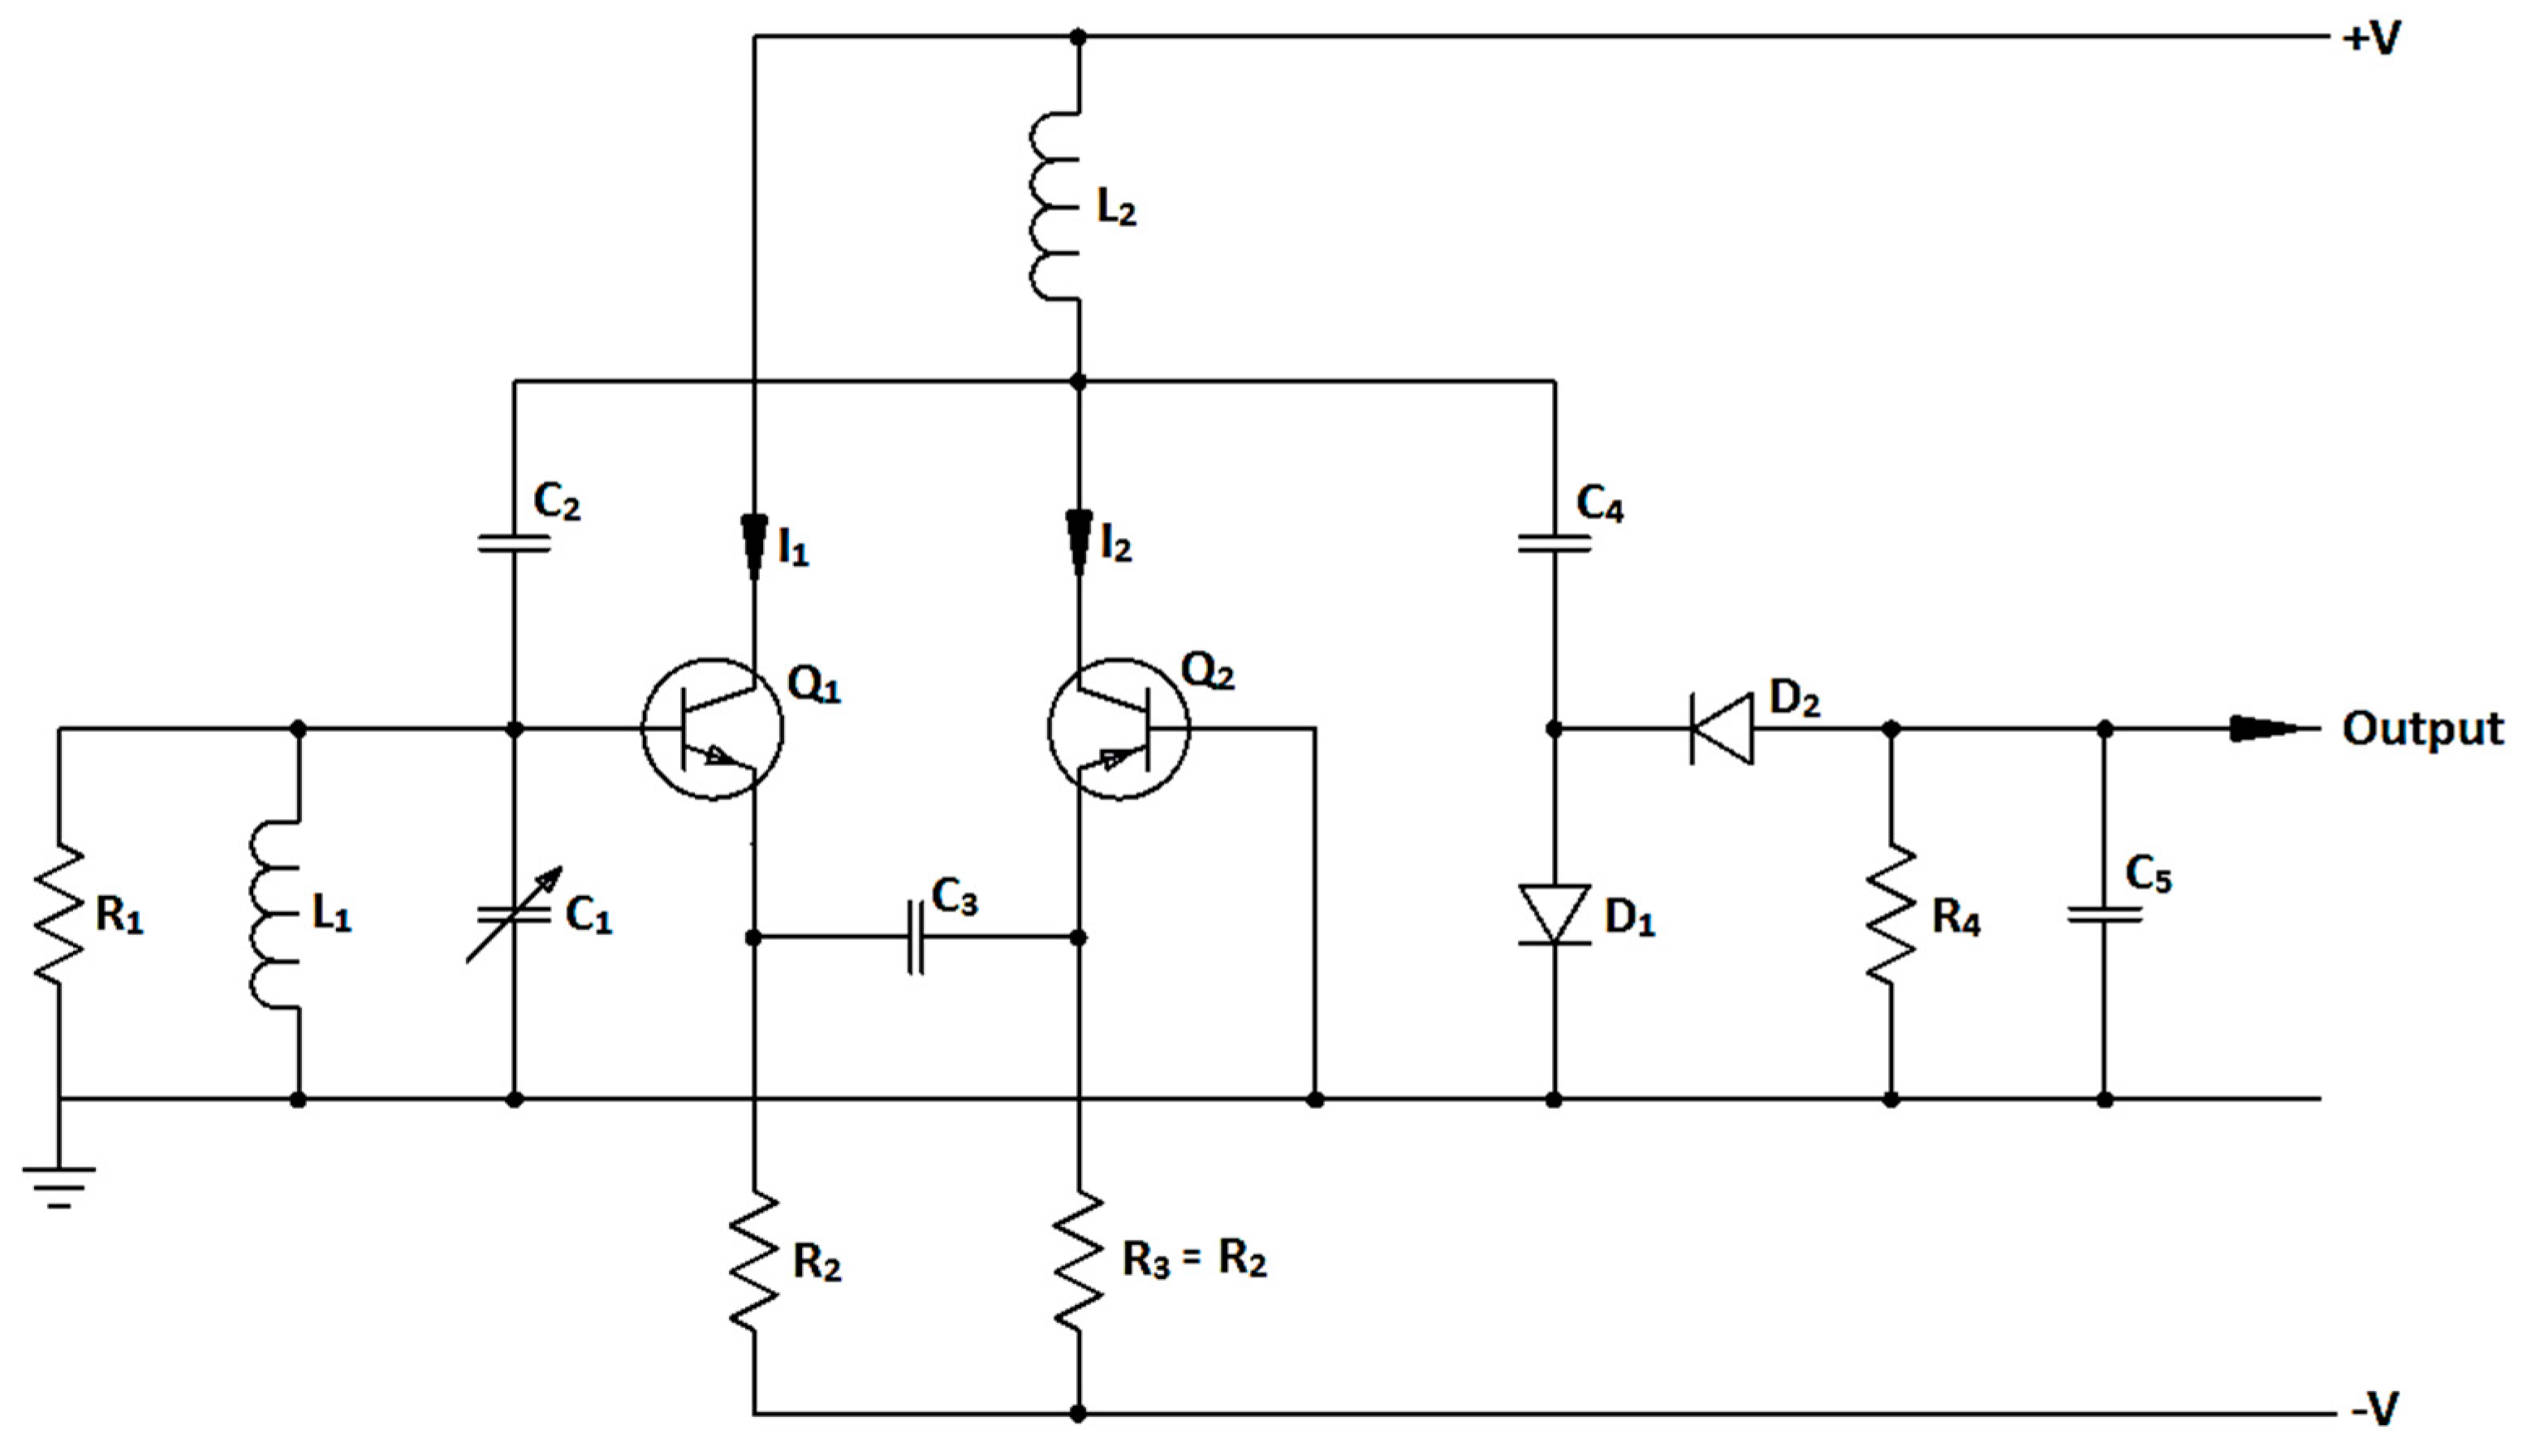 Electronics Free Full Text Advances In Prompt A Teacher February 2012 Circuit Diagram 06 00089 G010